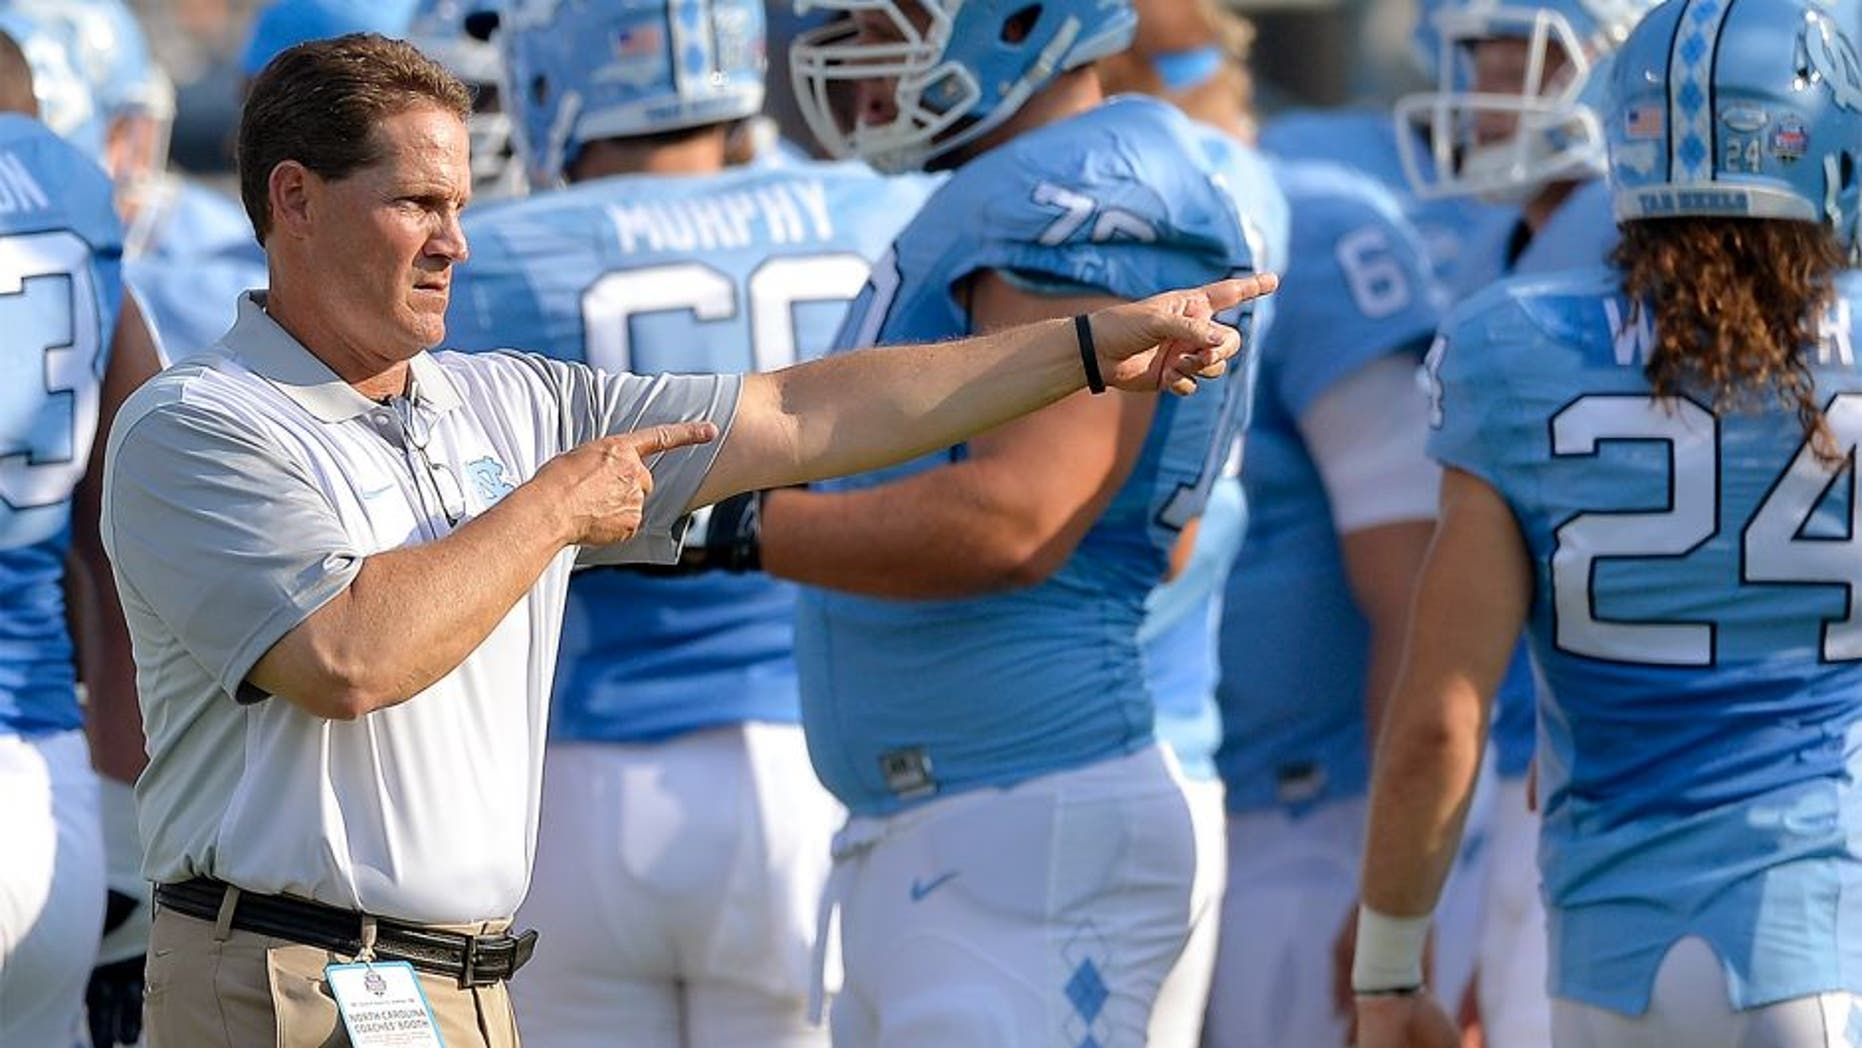 CHARLOTTE, NC - SEPTEMBER 03: Defensive coordinator Gene Chizik of the North Carolina Tar Heels during their game against the South Carolina Gamecocks at Bank of America Stadium on September 3, 2015 in Charlotte, North Carolina. South Carolina won 17-13. (Photo by Grant Halverson/Getty Images)